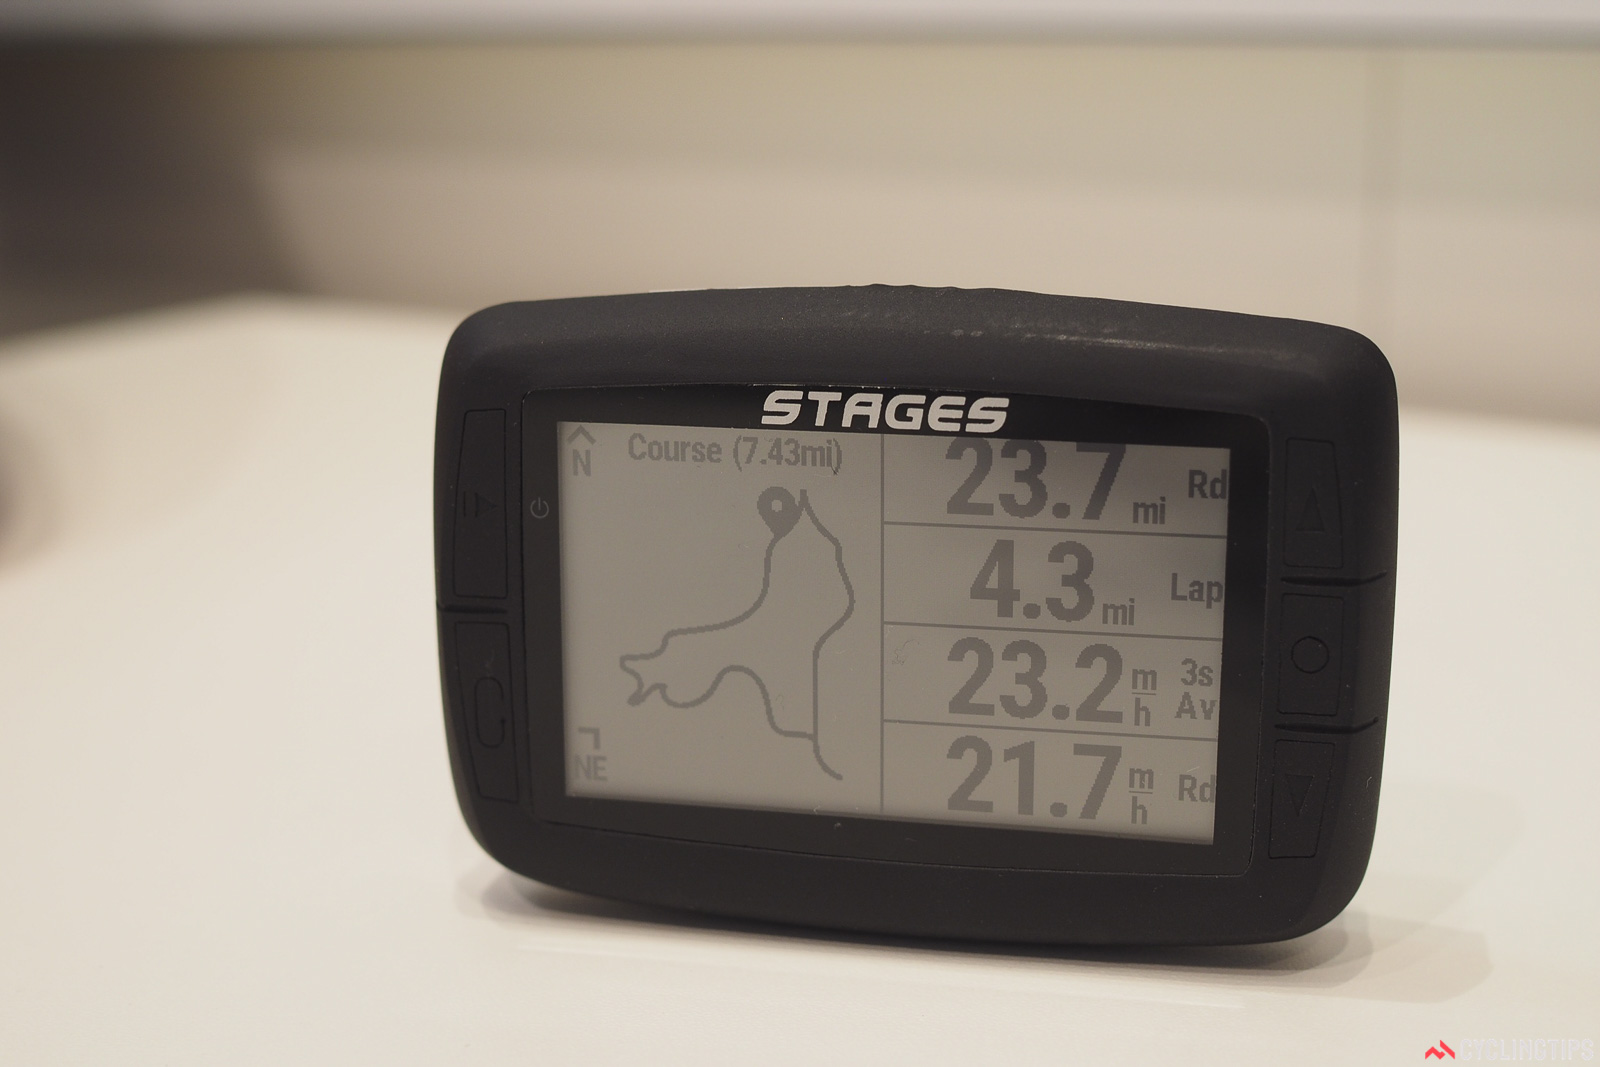 Stages Cycling's new GPS-enabled Dash computer head is a surprise entry from the power meter specialist. The black-and-white screen is big and crisp, and the display is highly customizable. It can even be set up in portrait or landscape modes, with multiple on-board profiles to keep all your display settings at the ready. Photo: James Huang.